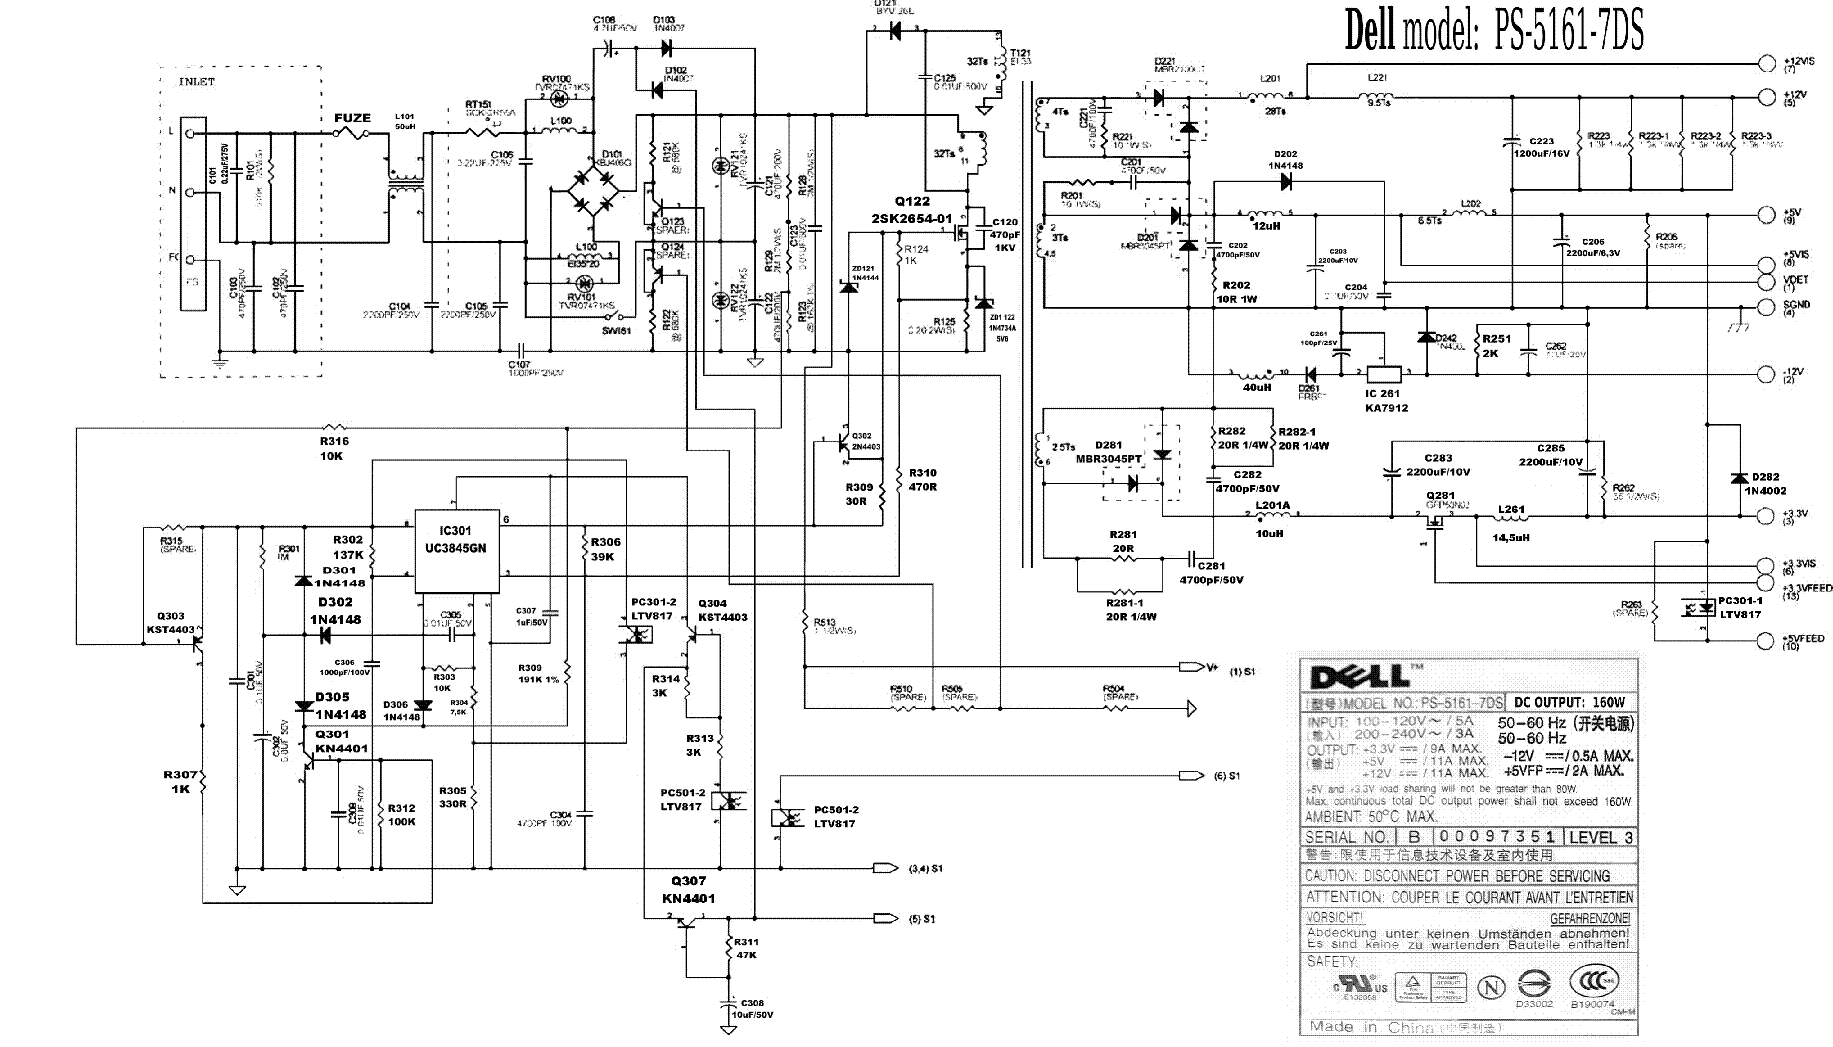 dell_ps 5161_7ds_power_supply_schematic.pdf_1 dell ps 5161 7ds power supply schematic service manual download dell inspiron 1520 ac adapter wiring diagram at webbmarketing.co